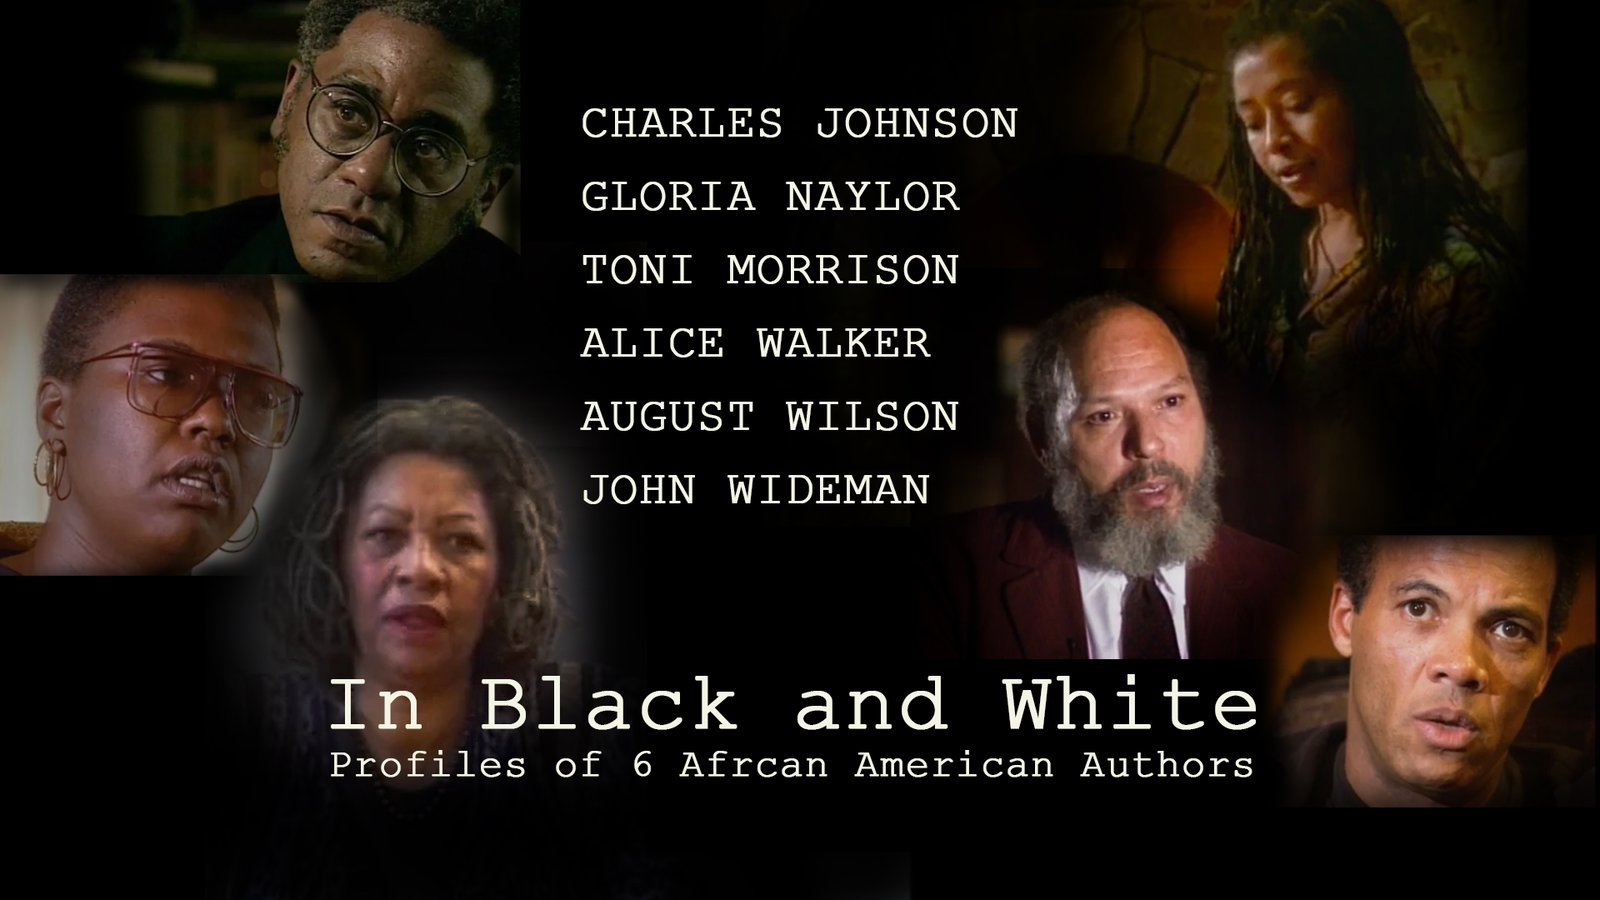 In Black And White - Six Profiles of African American Authors